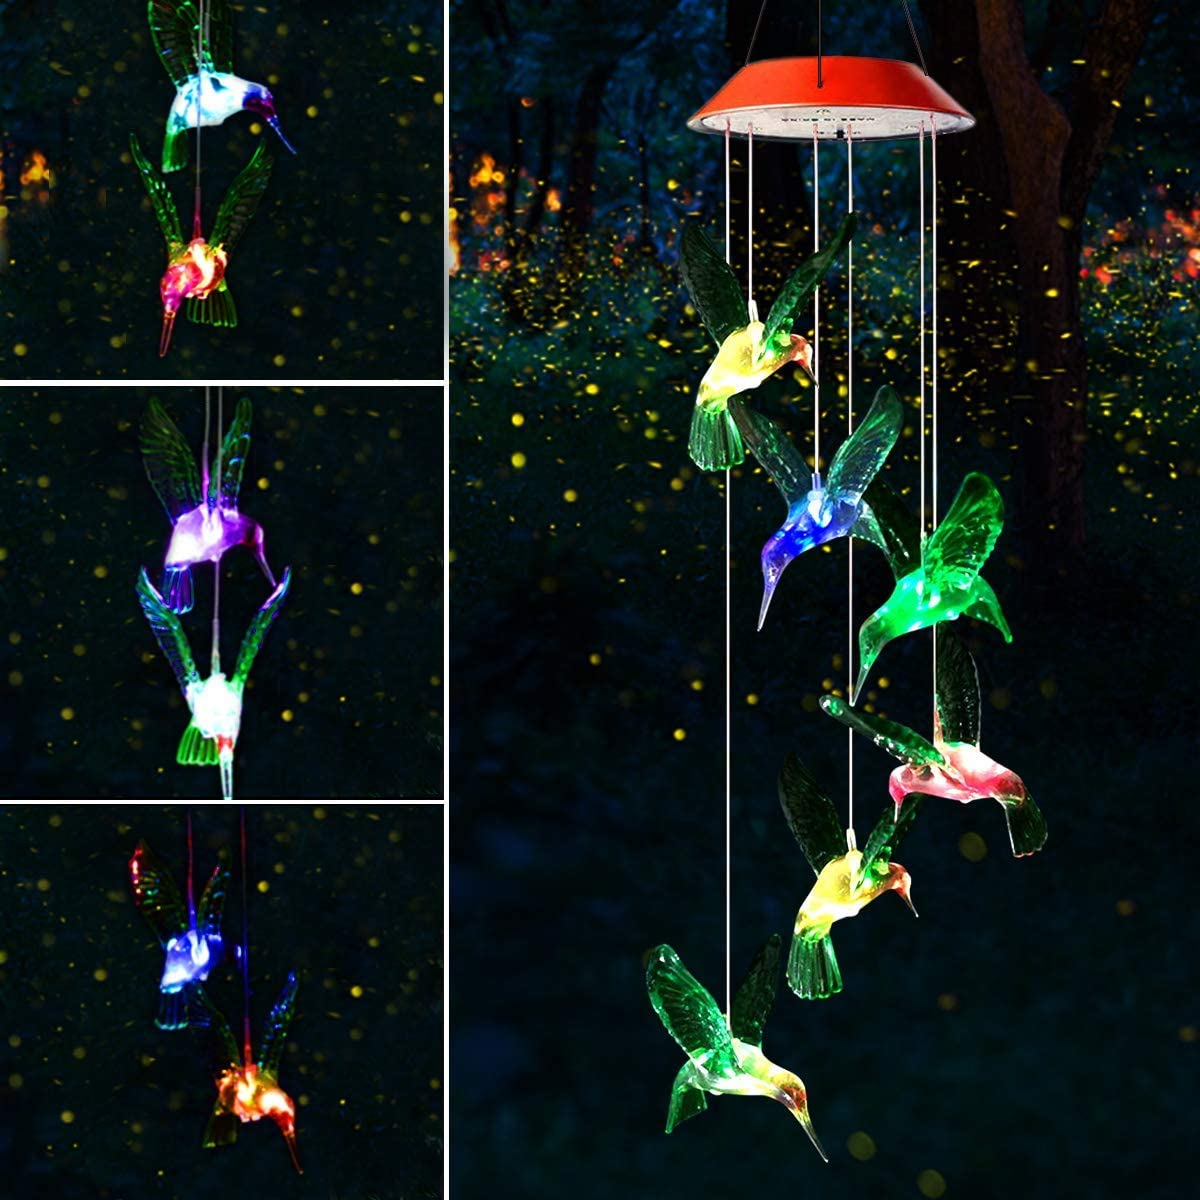 Patio Color Changing LED Wind Chimes Outdoor D/écor for Garden Gifts for Mom Yard Grandma Wife Home Waterproof Wind Mobile Solar Lights SIX FOXES Hummingbird Solar Wind Chimes